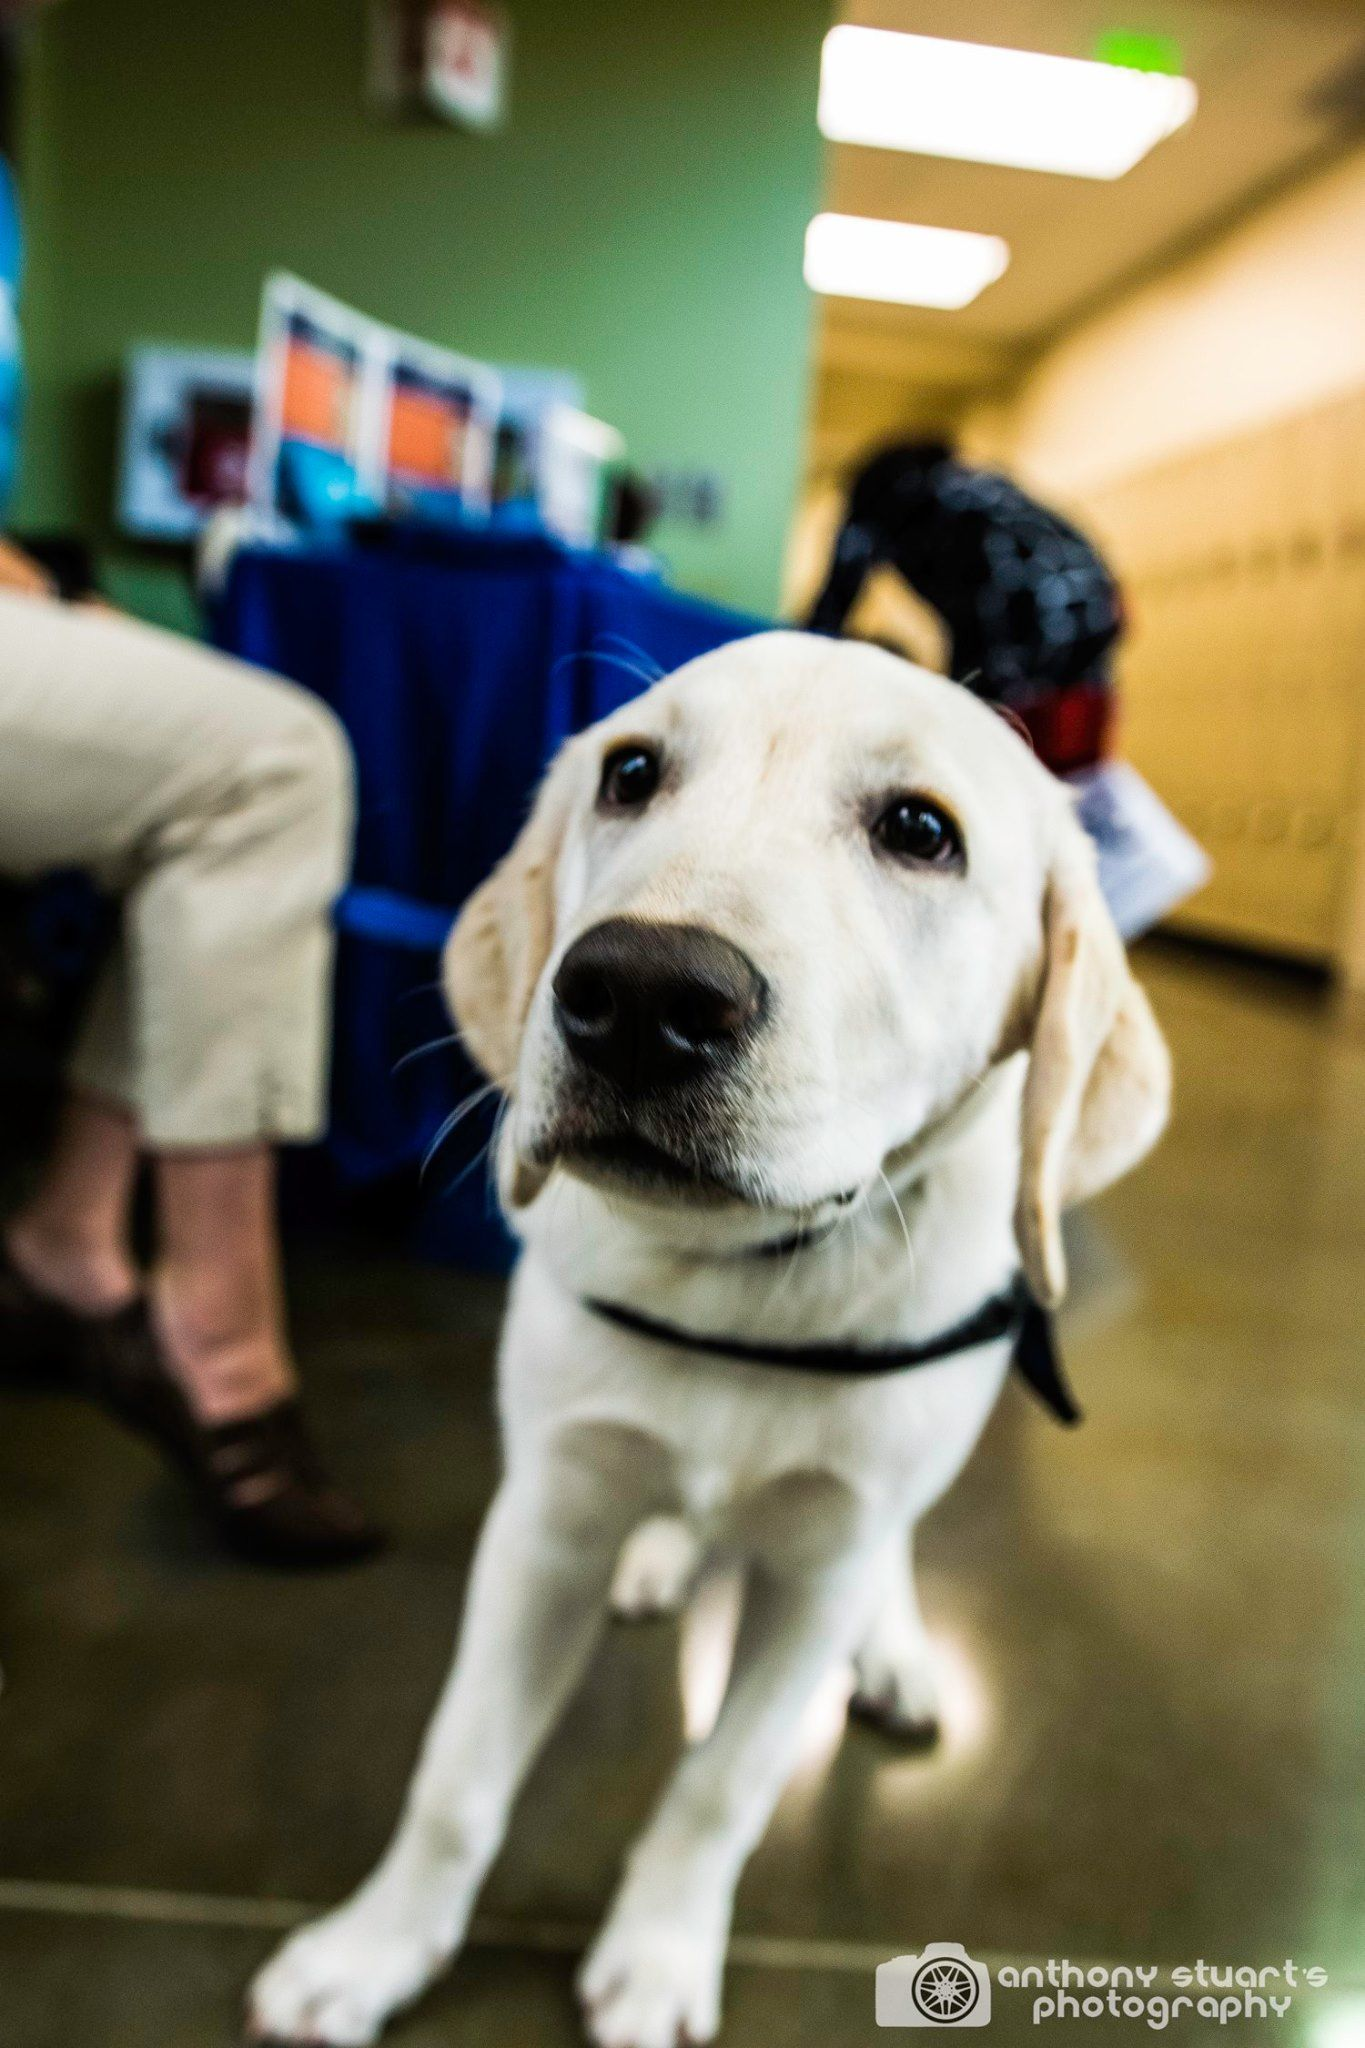 The SPCollege Veterinary Technology Center celebrated its